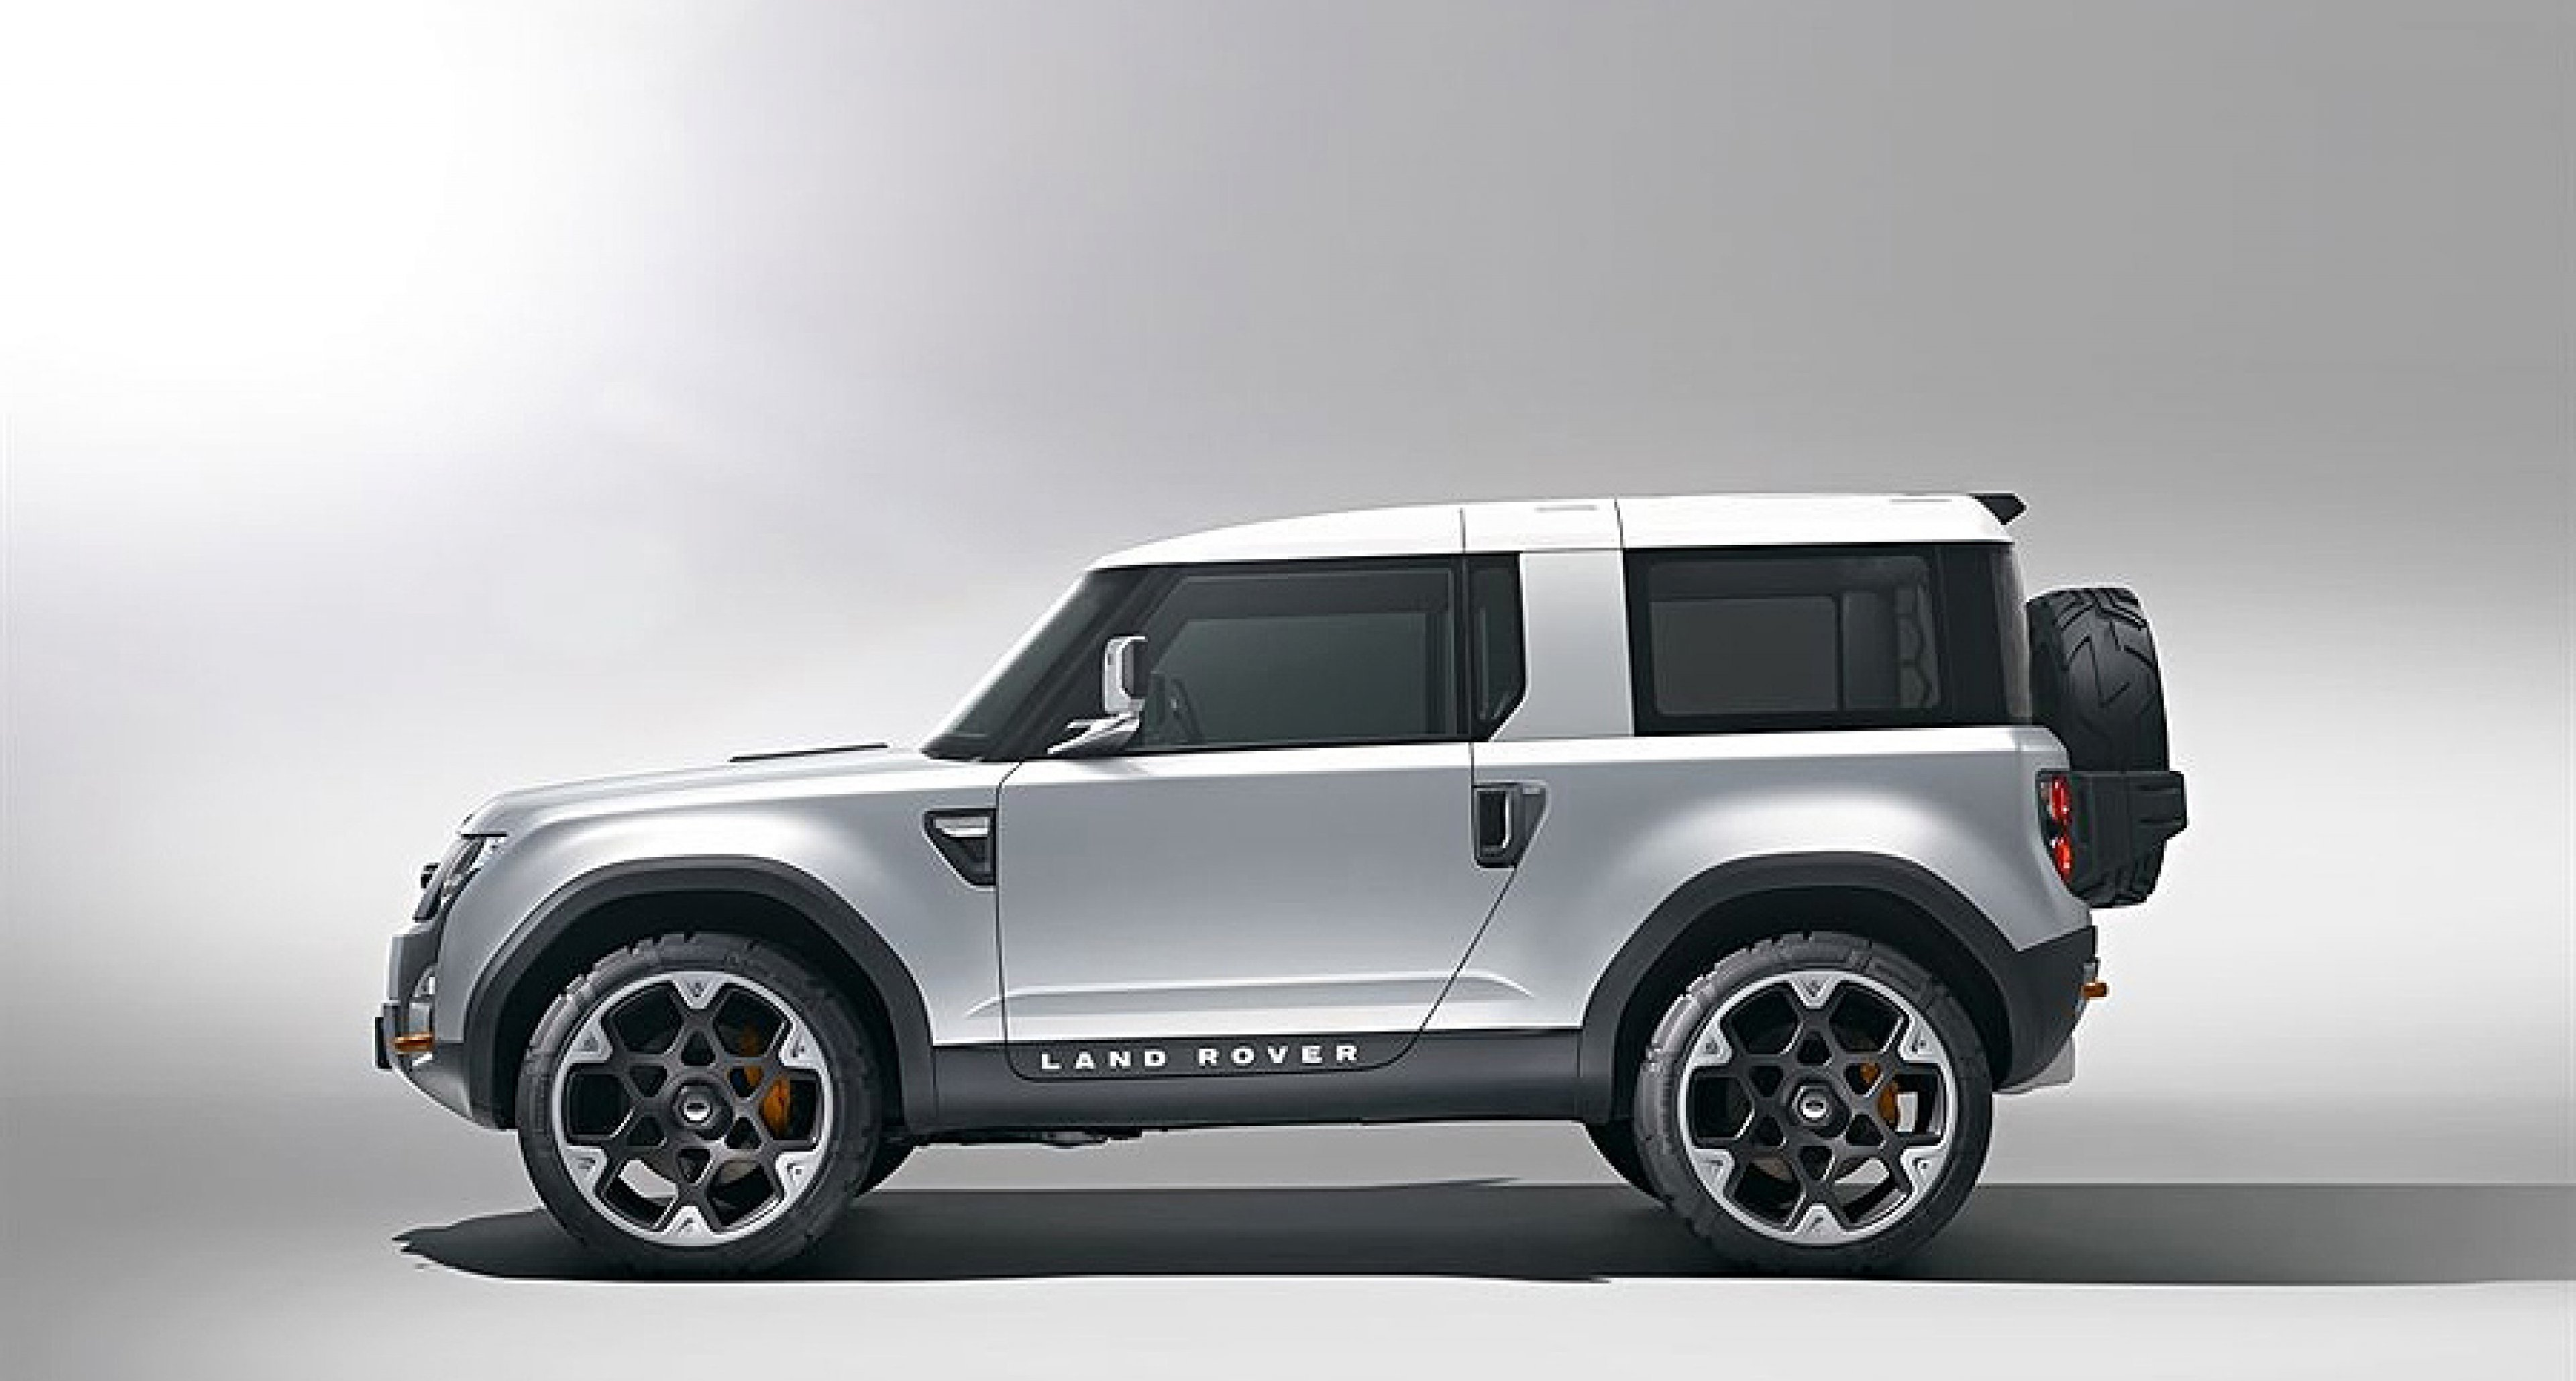 Land Rover DC100 concept hints at all-new Defender for 2015